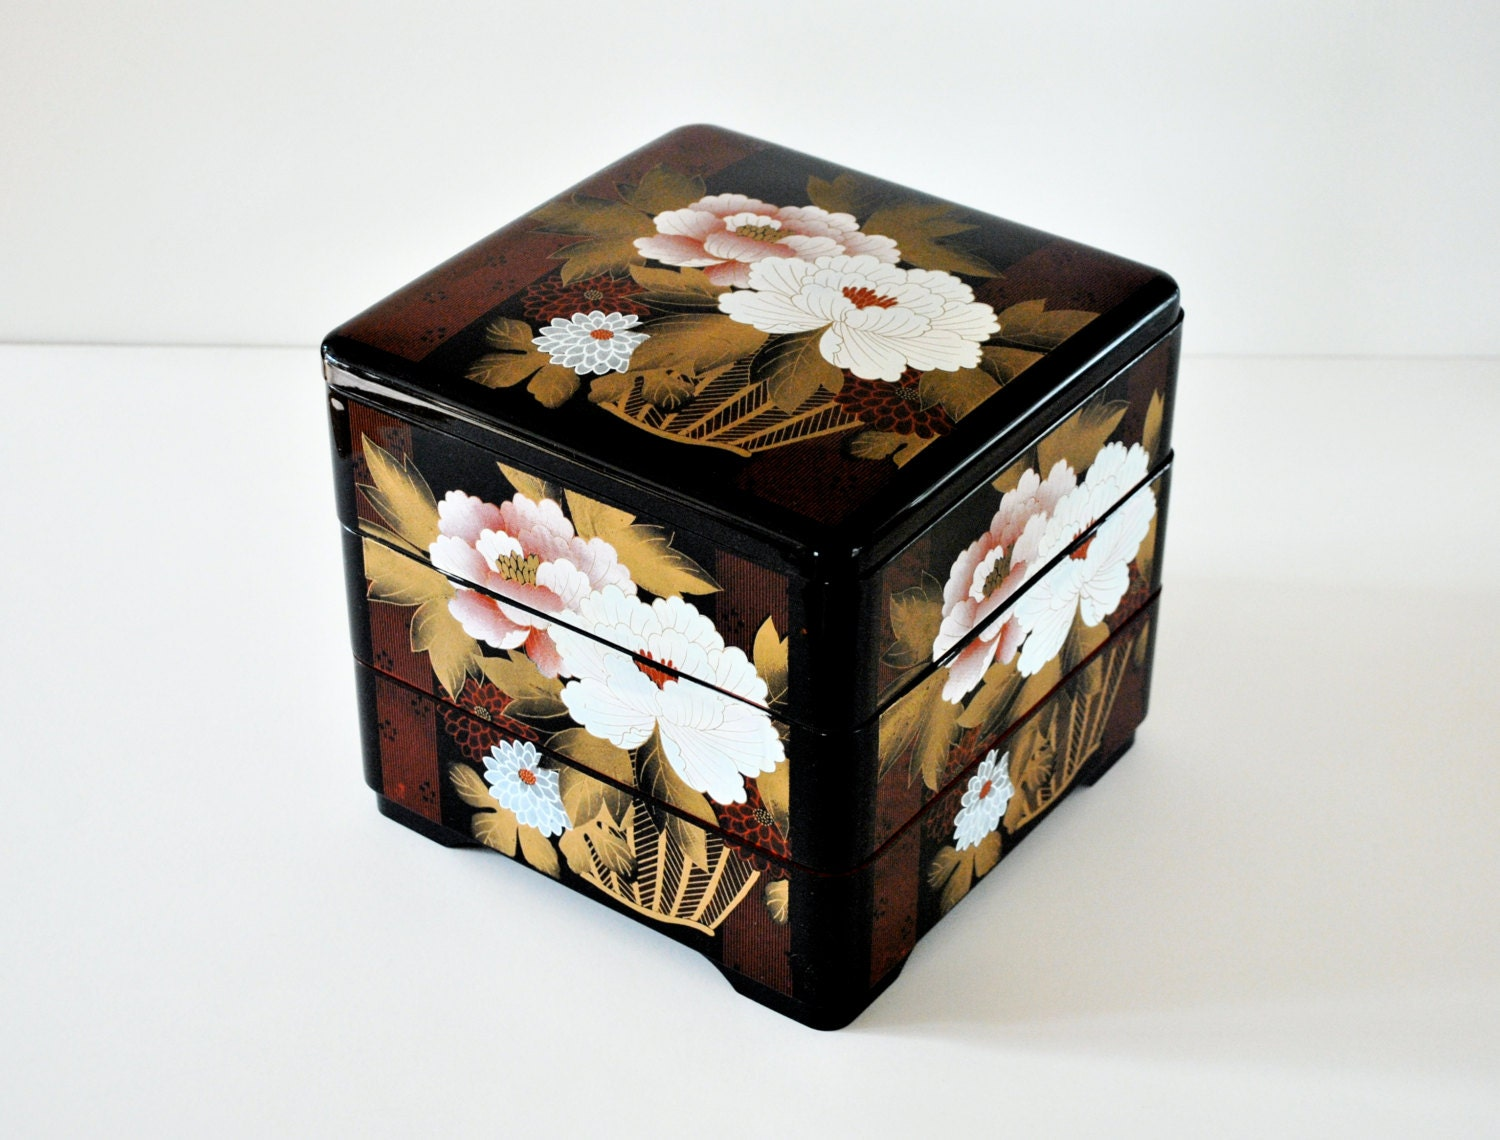 vintage bento box japanese lacquer ware large by daisychainvintage. Black Bedroom Furniture Sets. Home Design Ideas